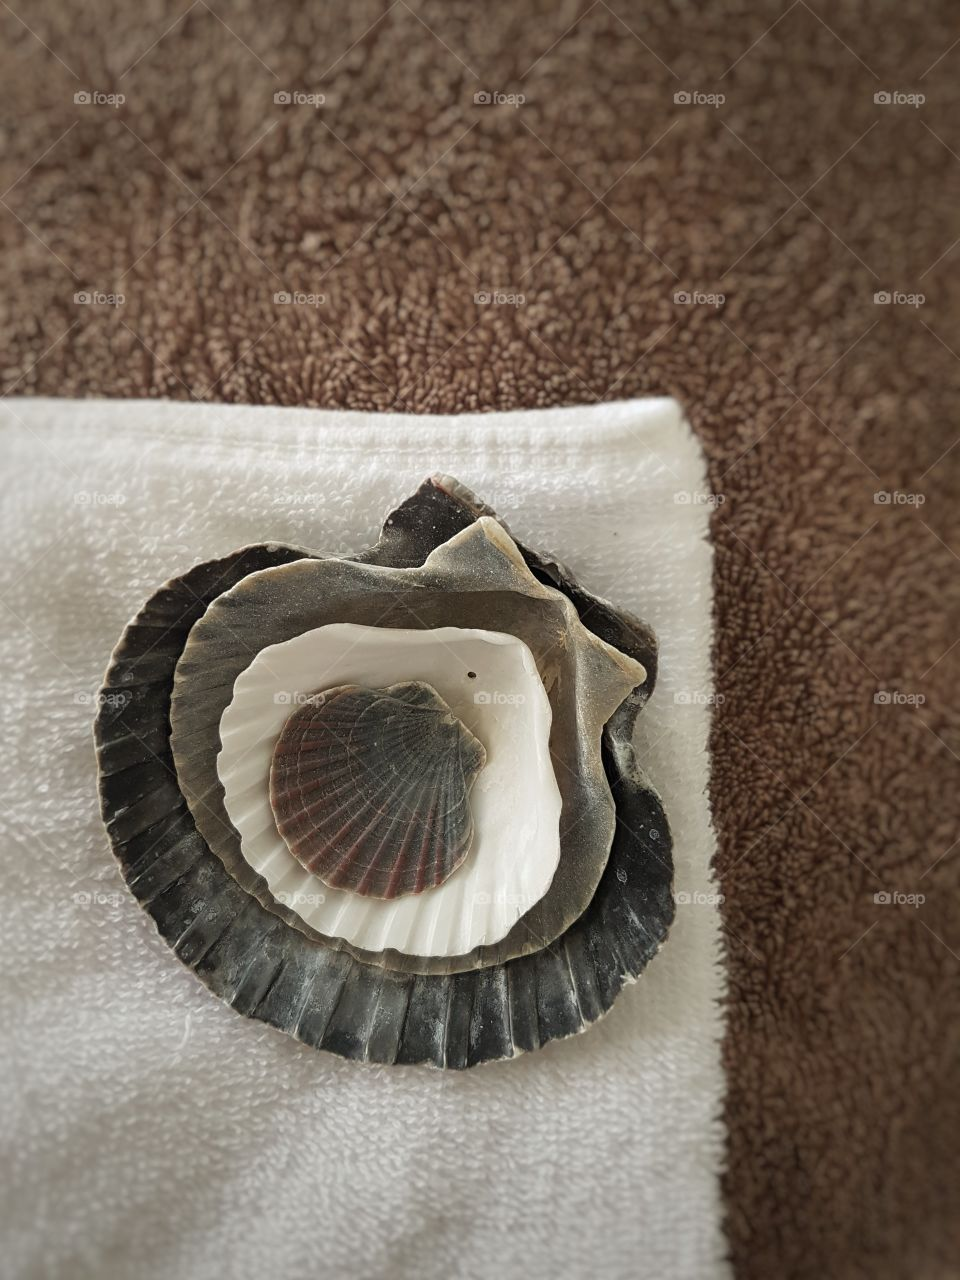 Nesting Sea Shells on stack of folded towels